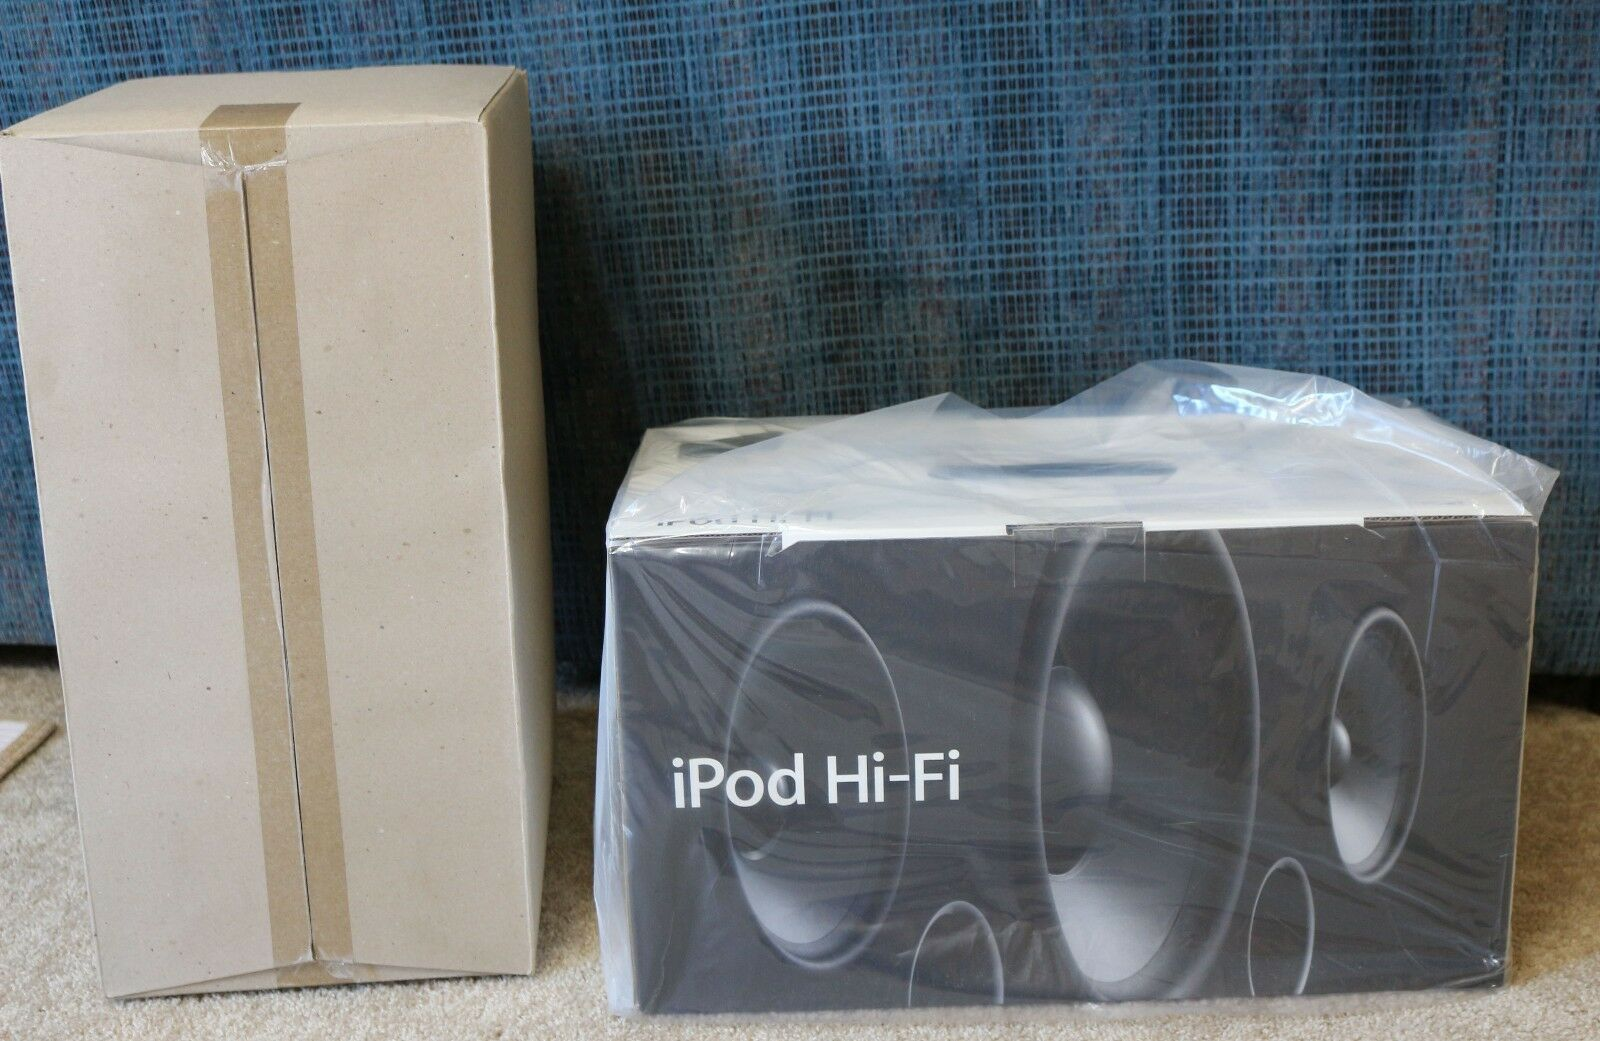 $500.00 - Brand New Apple Hi-Fi iPod Home Stereo Speaker Model  A1121